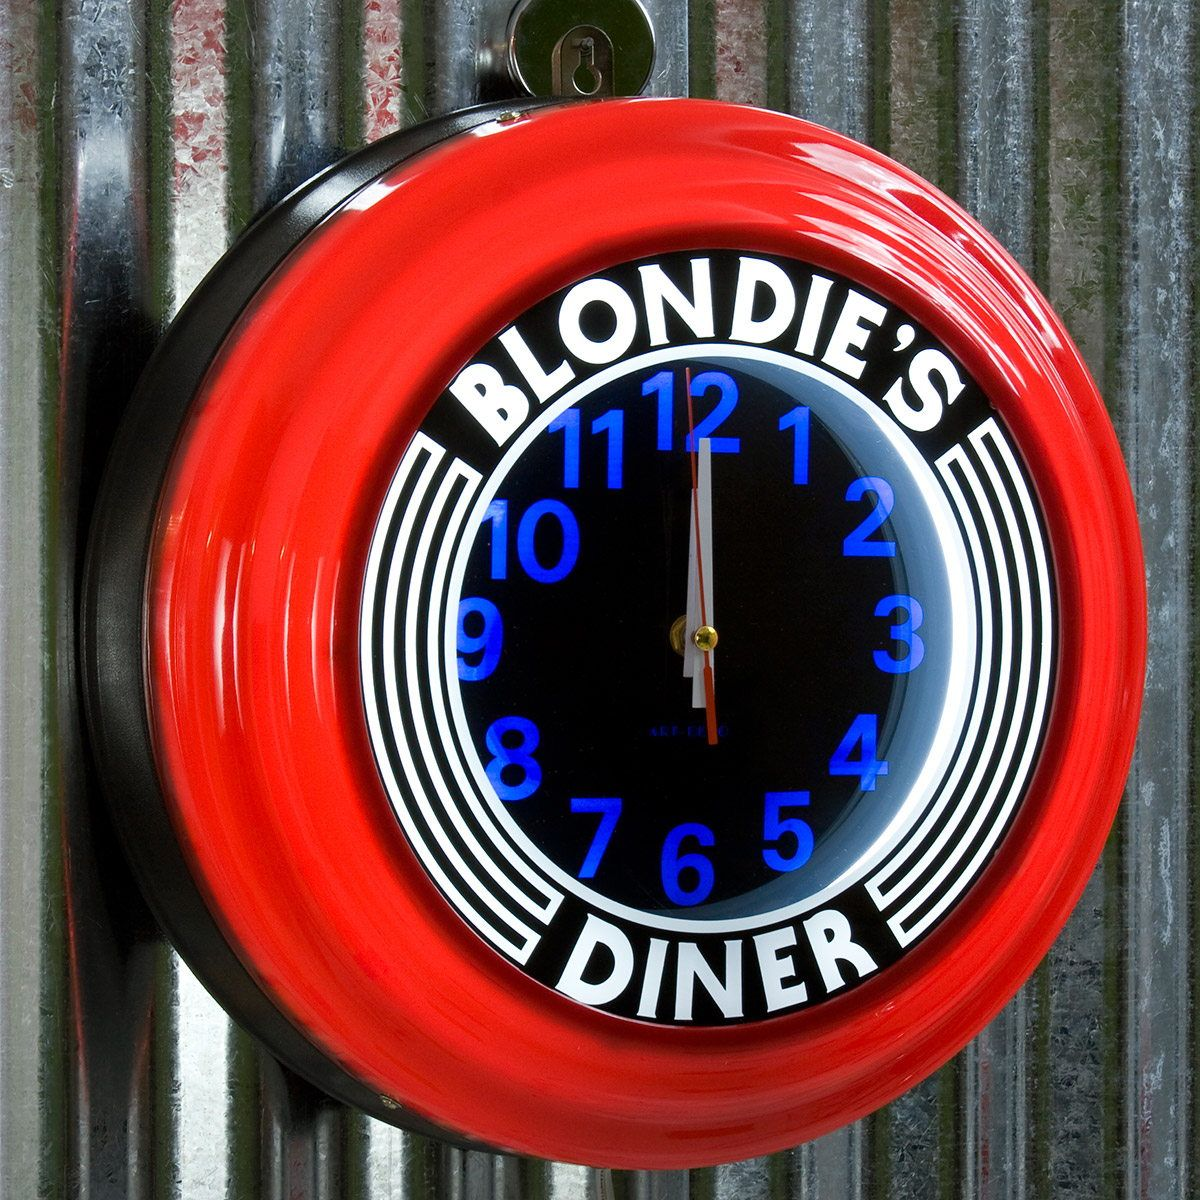 Blondies Diner Red Lighted Diner Wall Clock Clock Retro Clock Red Wall Clock